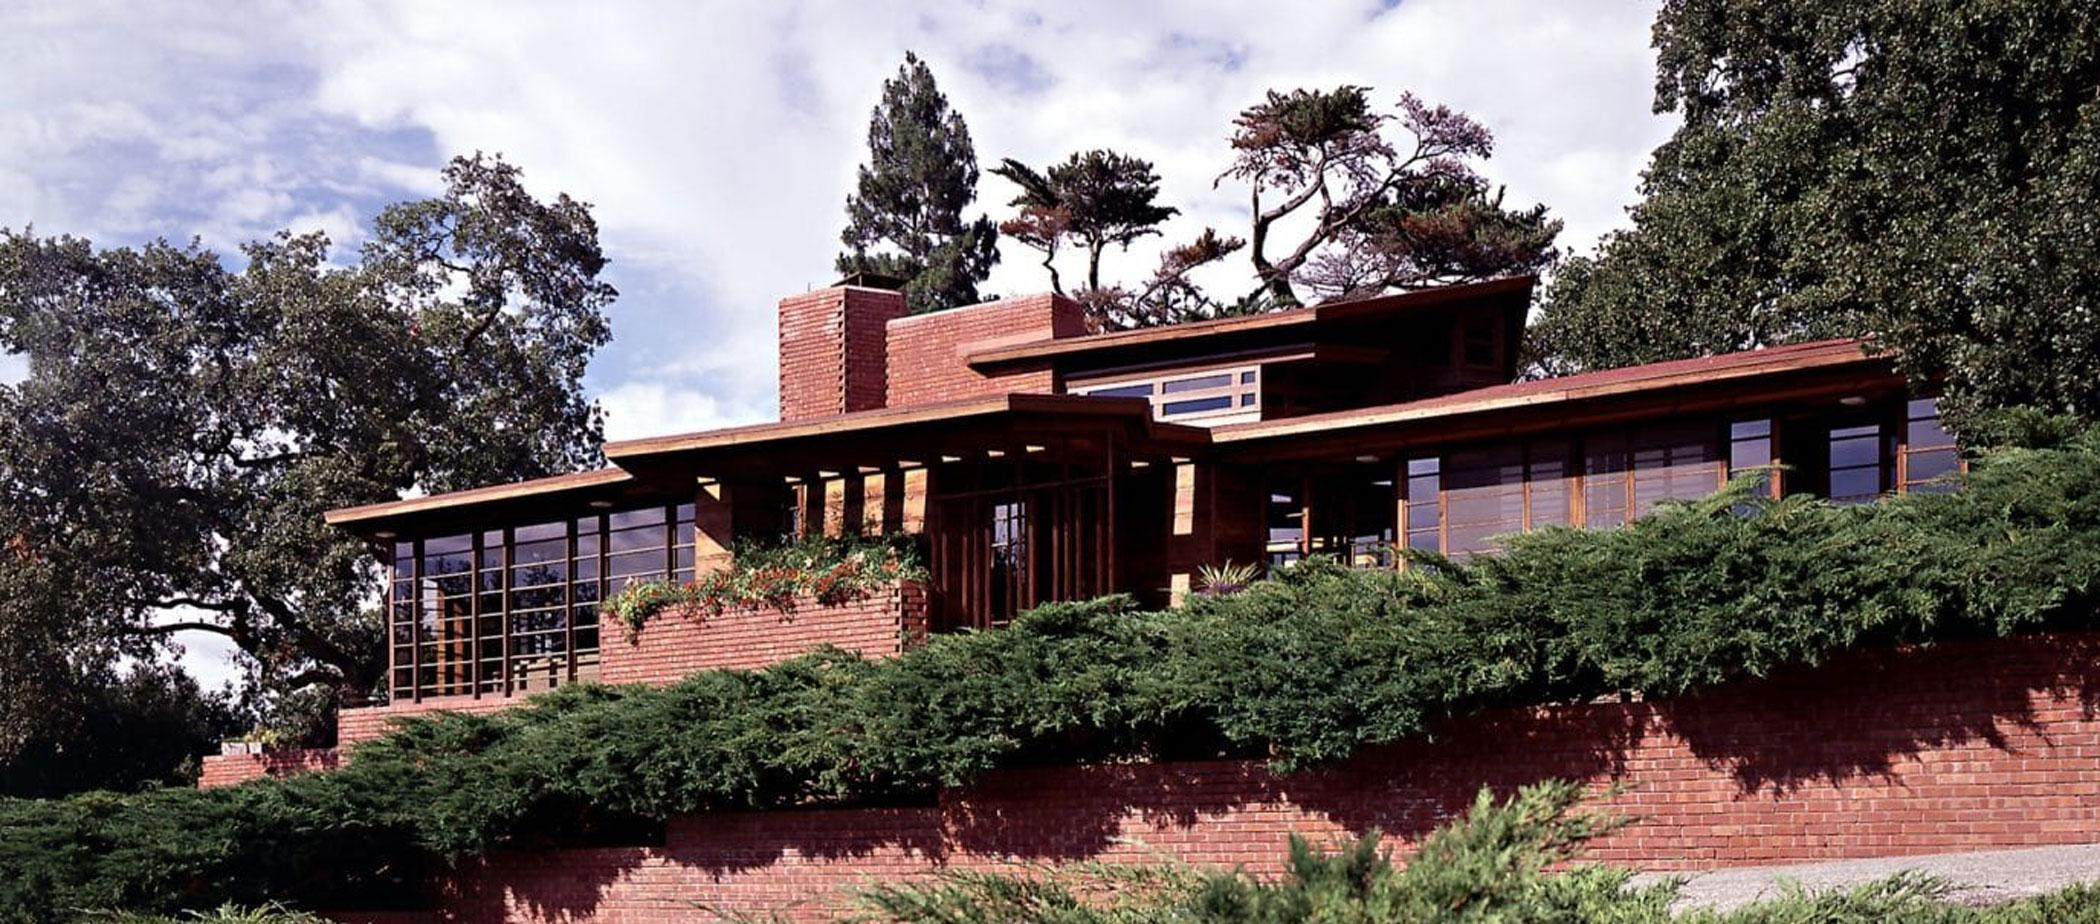 The Hanna House, Stanford, California.